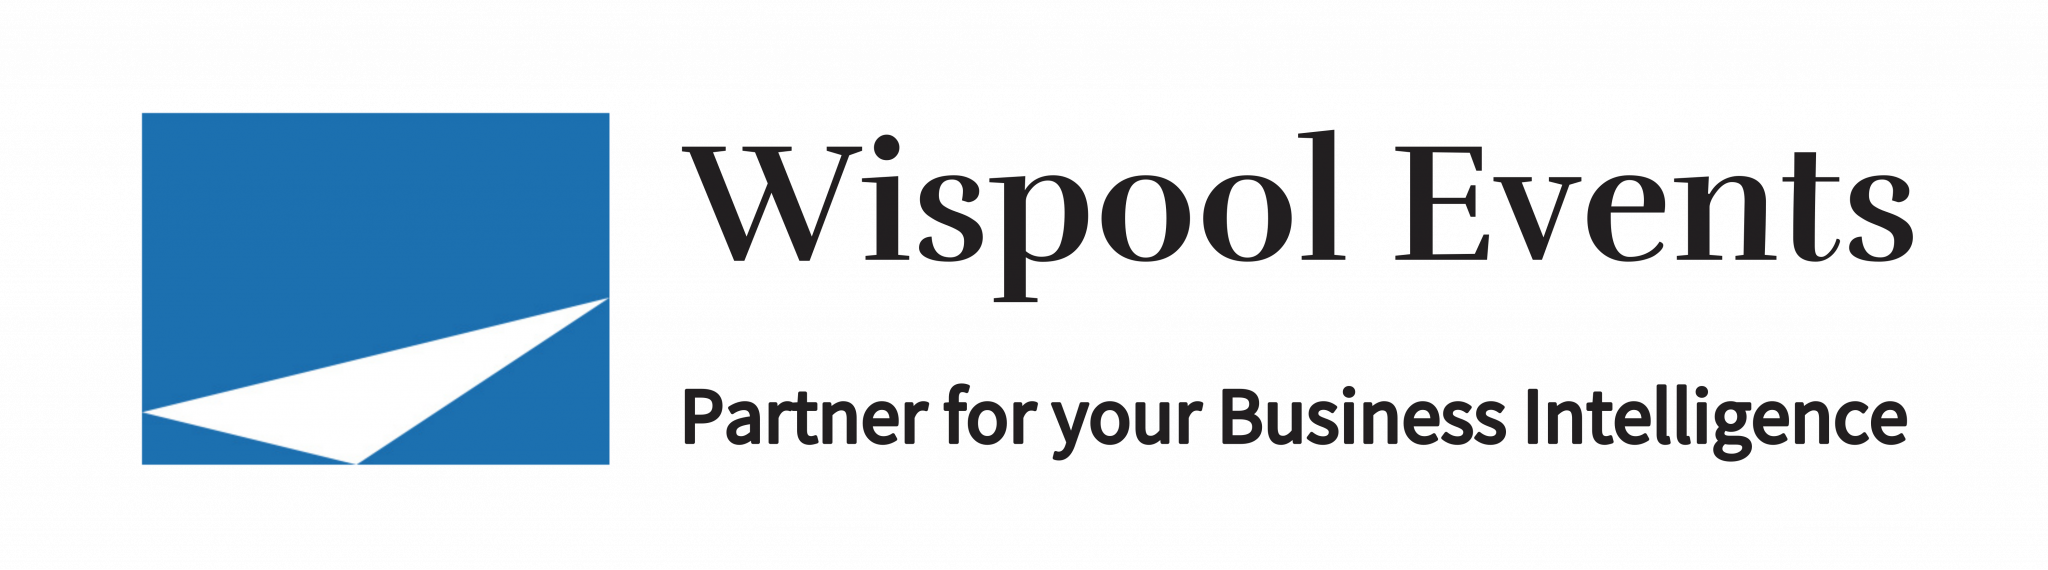 Wispool Events